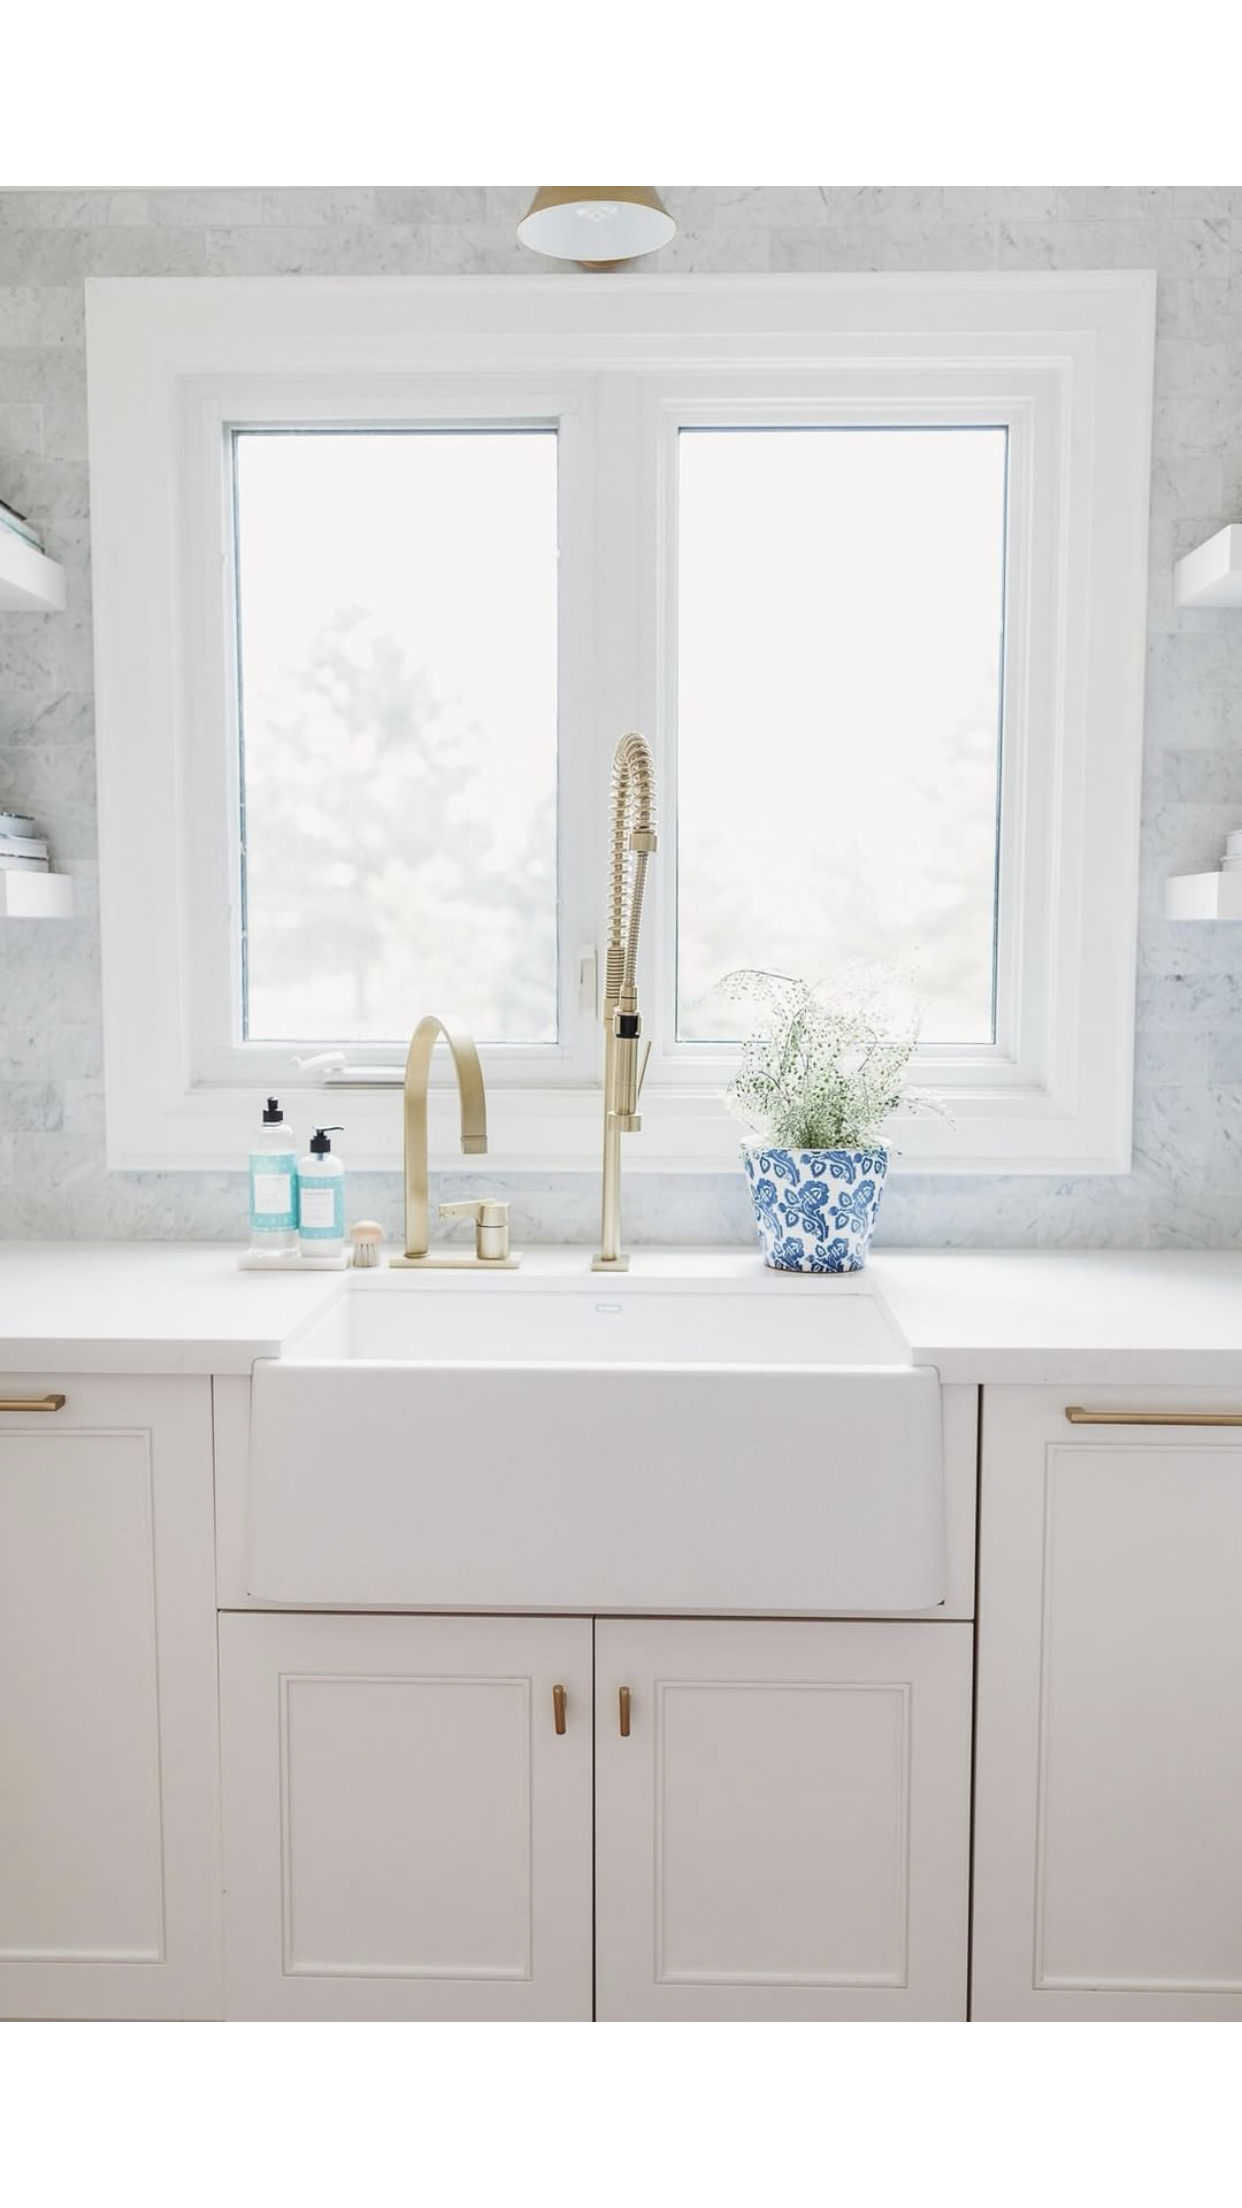 Brass Faucet Blanco Silk Granite Apron Front Sink White Kitchen Designed By Andrea Mcqueen White Kitchen Farmhouse Sink Kitchen Faucet Farmhouse Kitchen Faucet